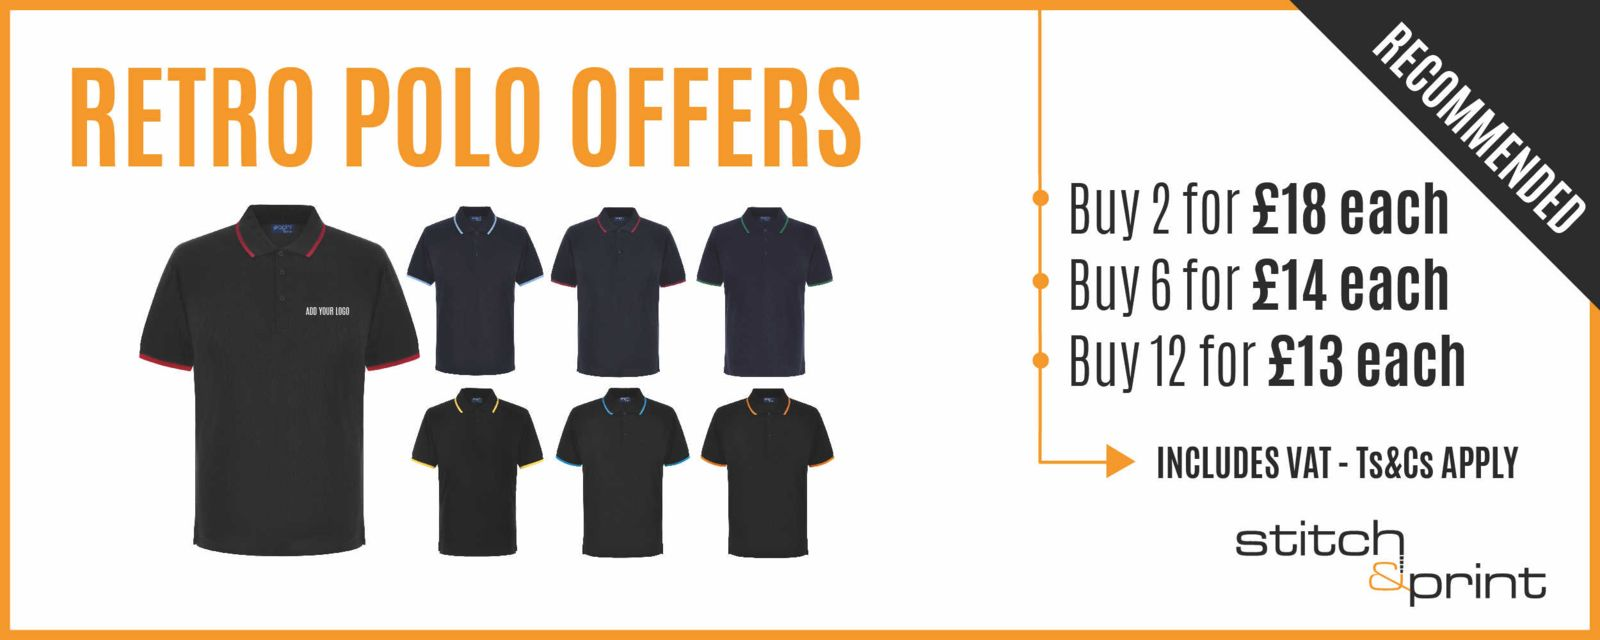 Embroidered Polo Shirt Offer